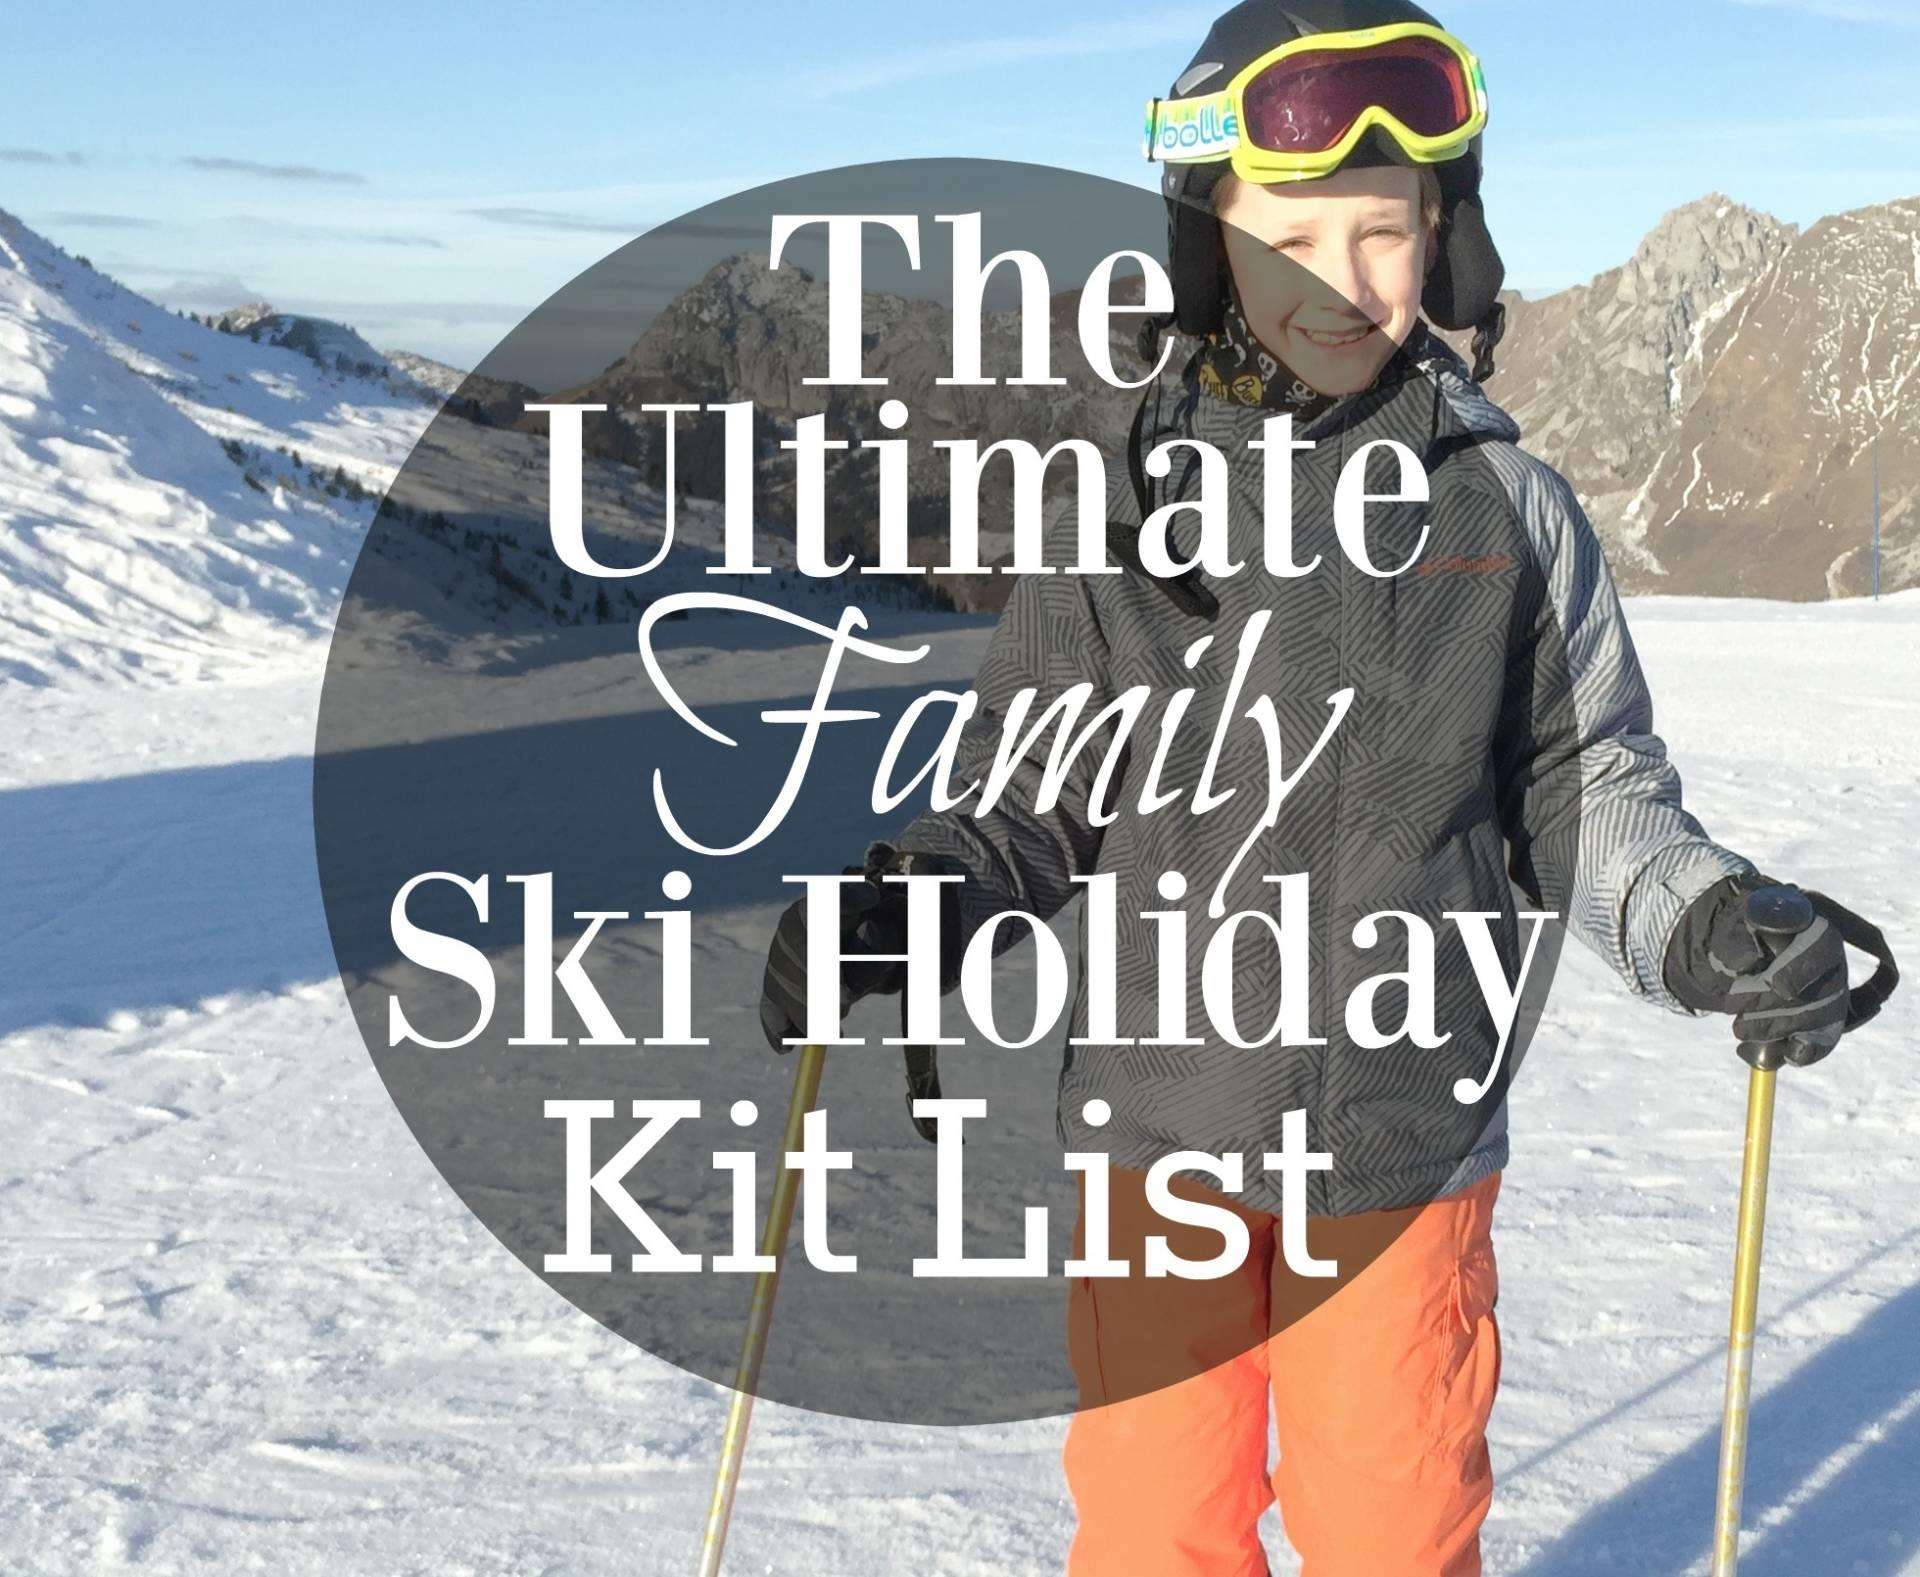 Family Ski Holiday Kit List, Family ski holiday kit FT%, daily-dad, product-review%